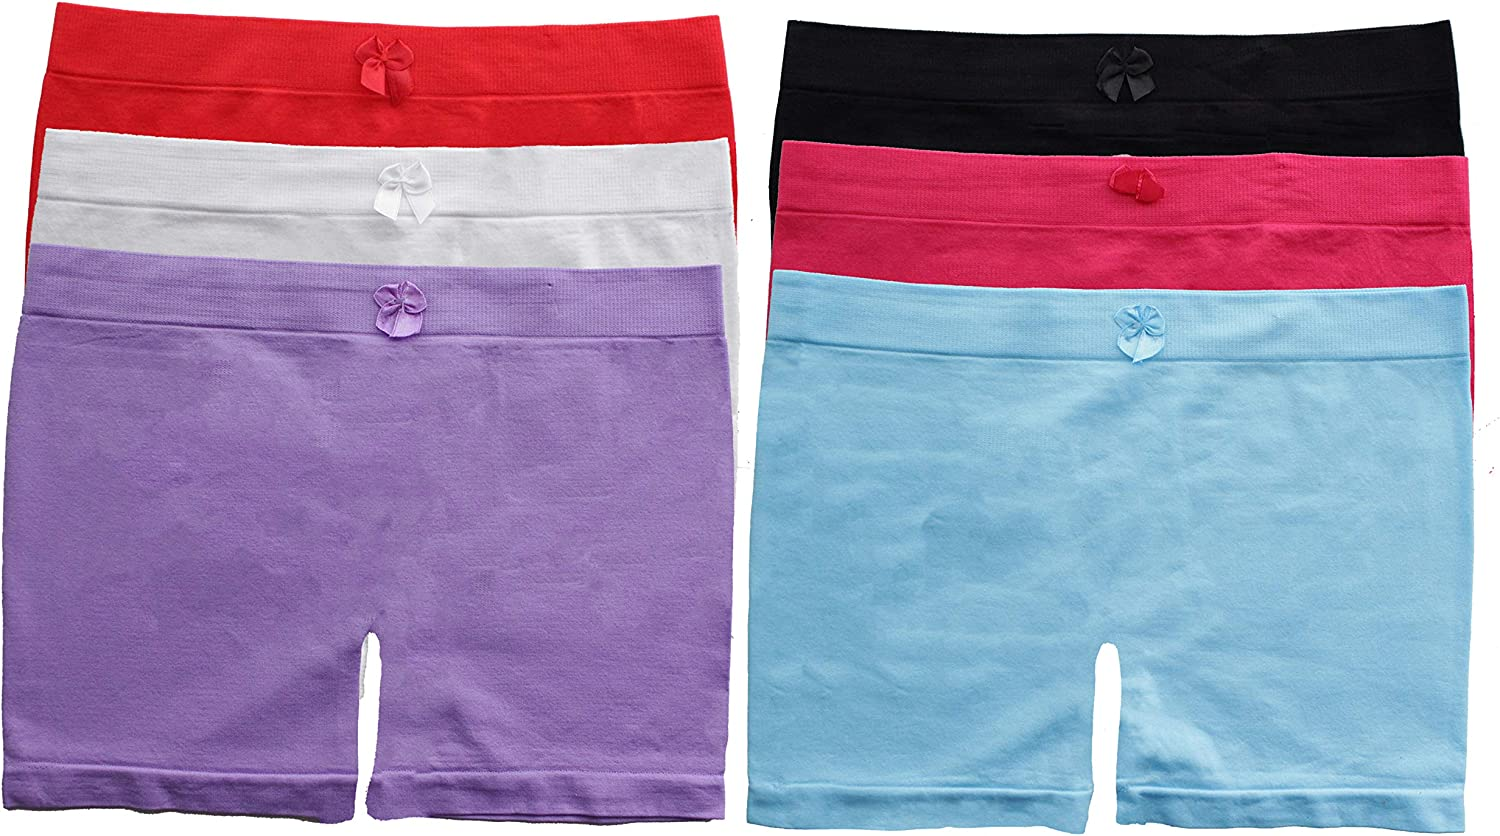 Gilbins Girls Above Knee Seamless Solid Colors Nylon Bike Shorts for Sports Or Under Skirts, 6 Pack